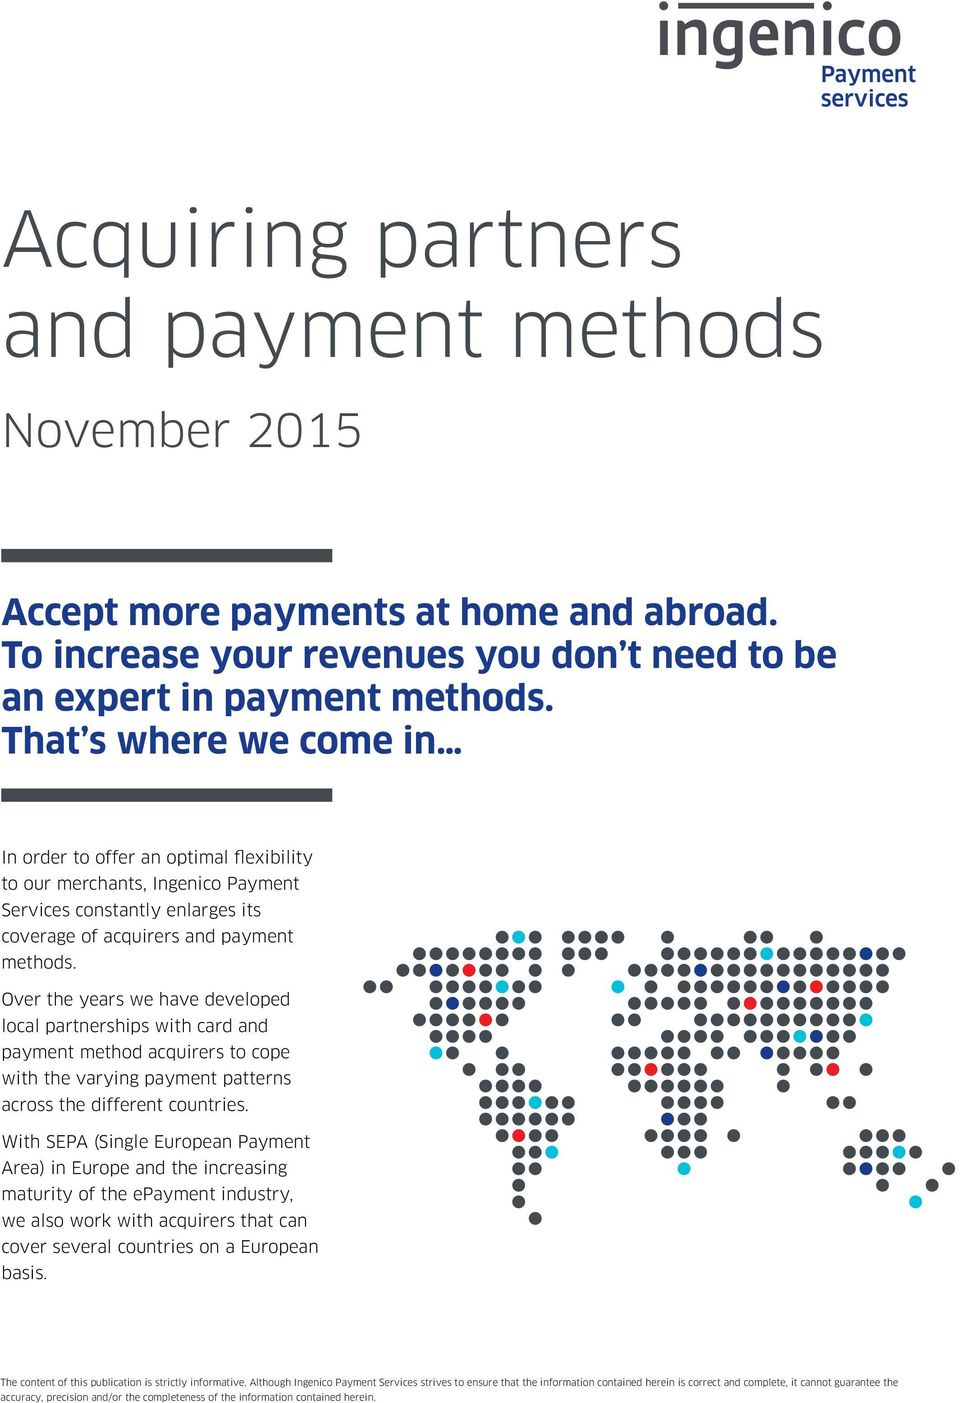 Acquiring partners and payment methods - PDF